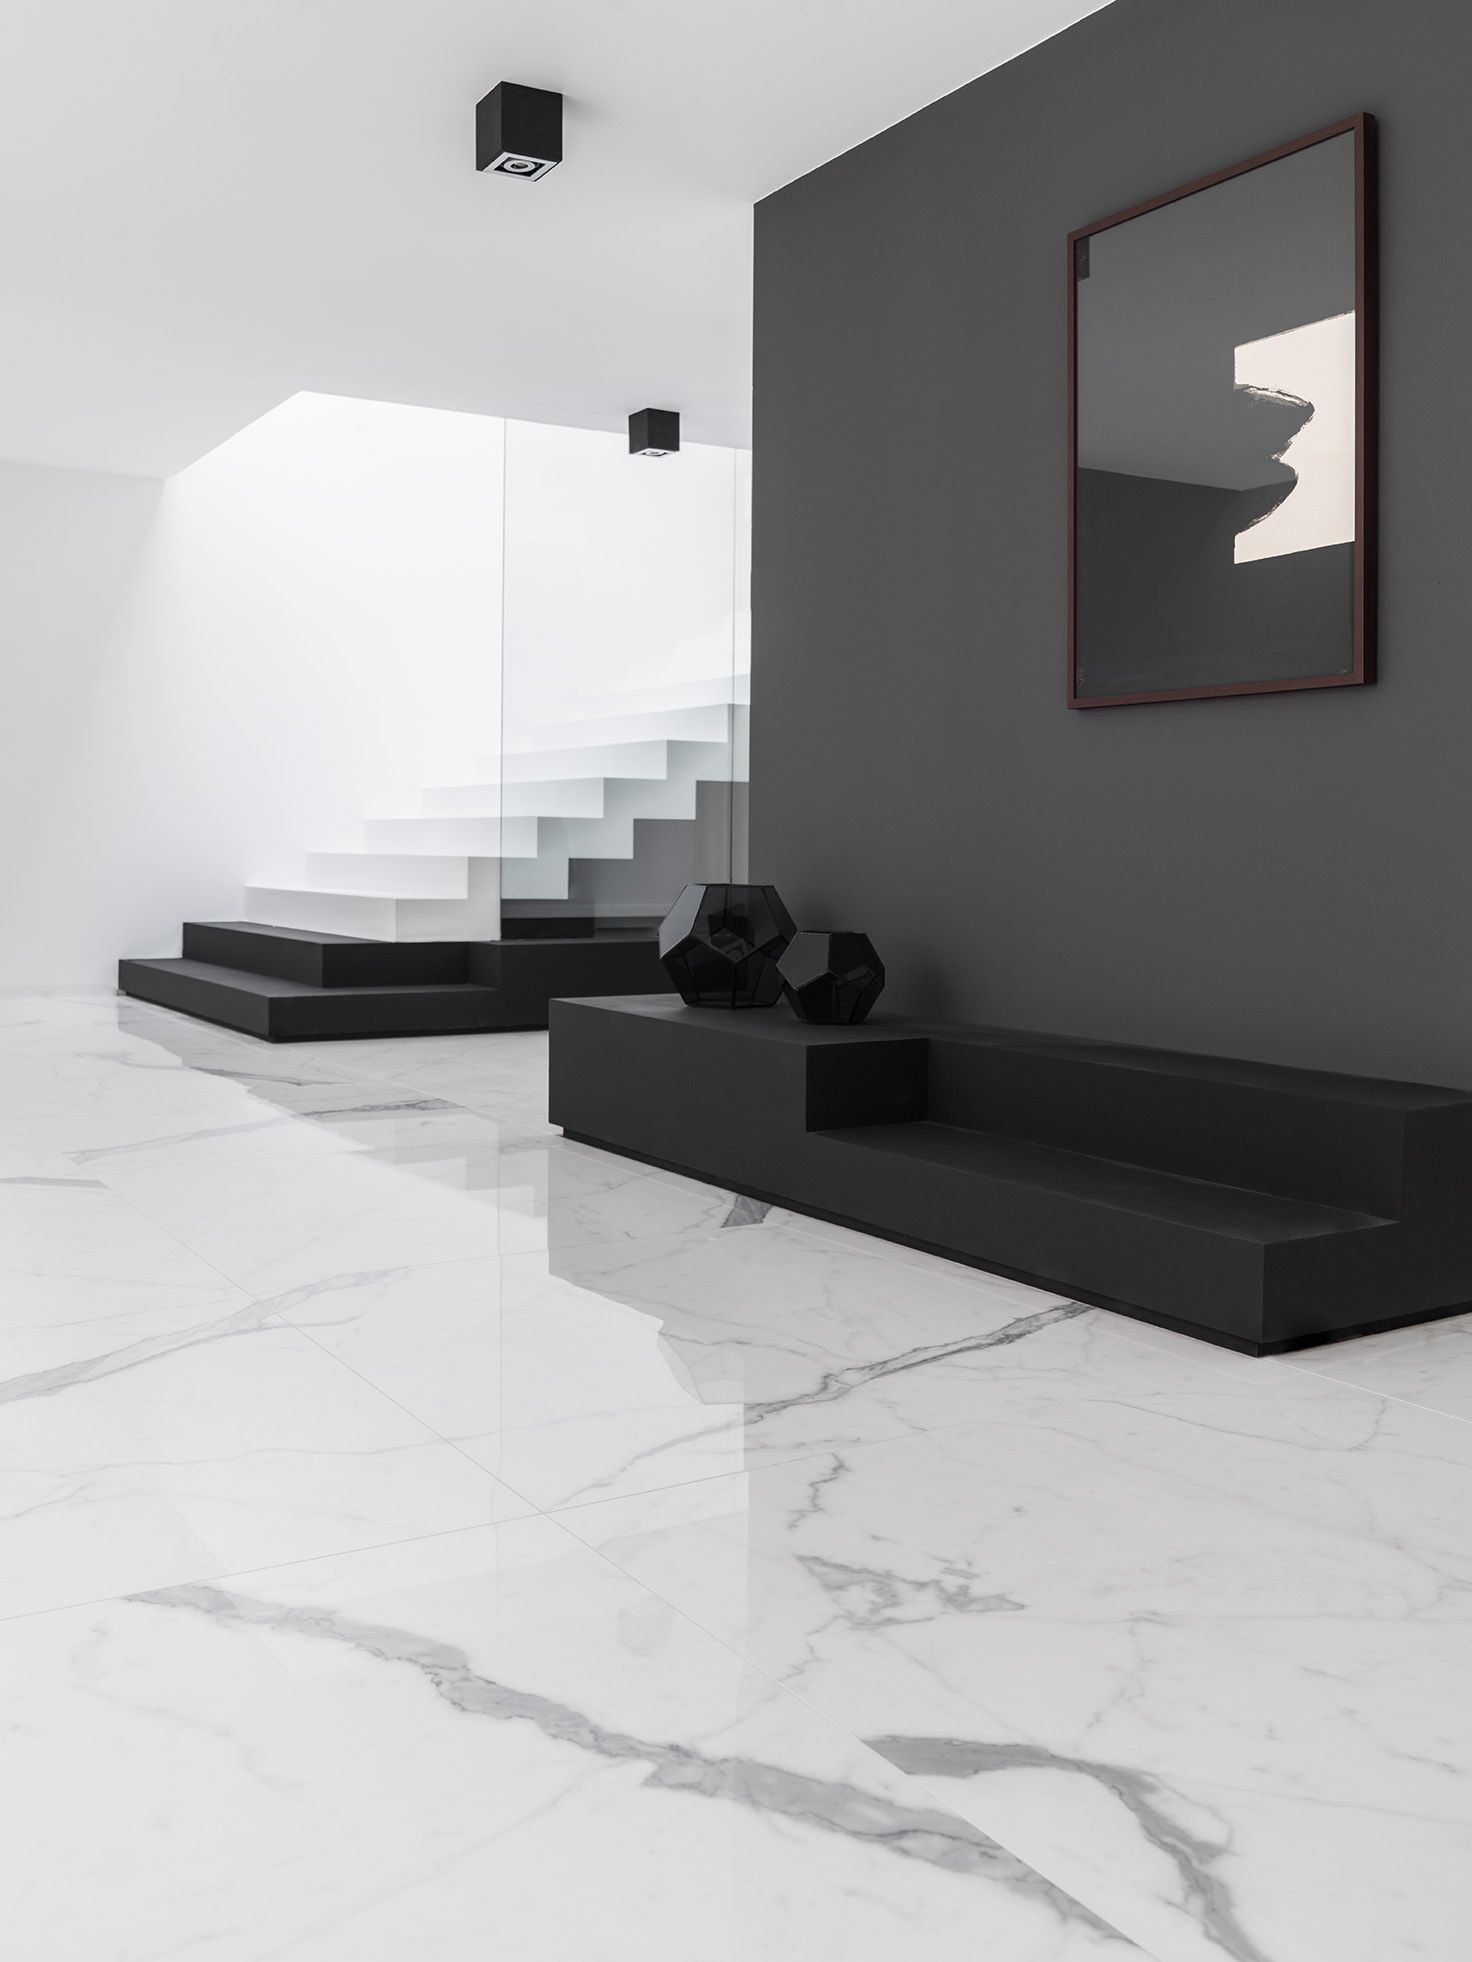 The Marble Floor Contrasts Nicely Against The Solid Black